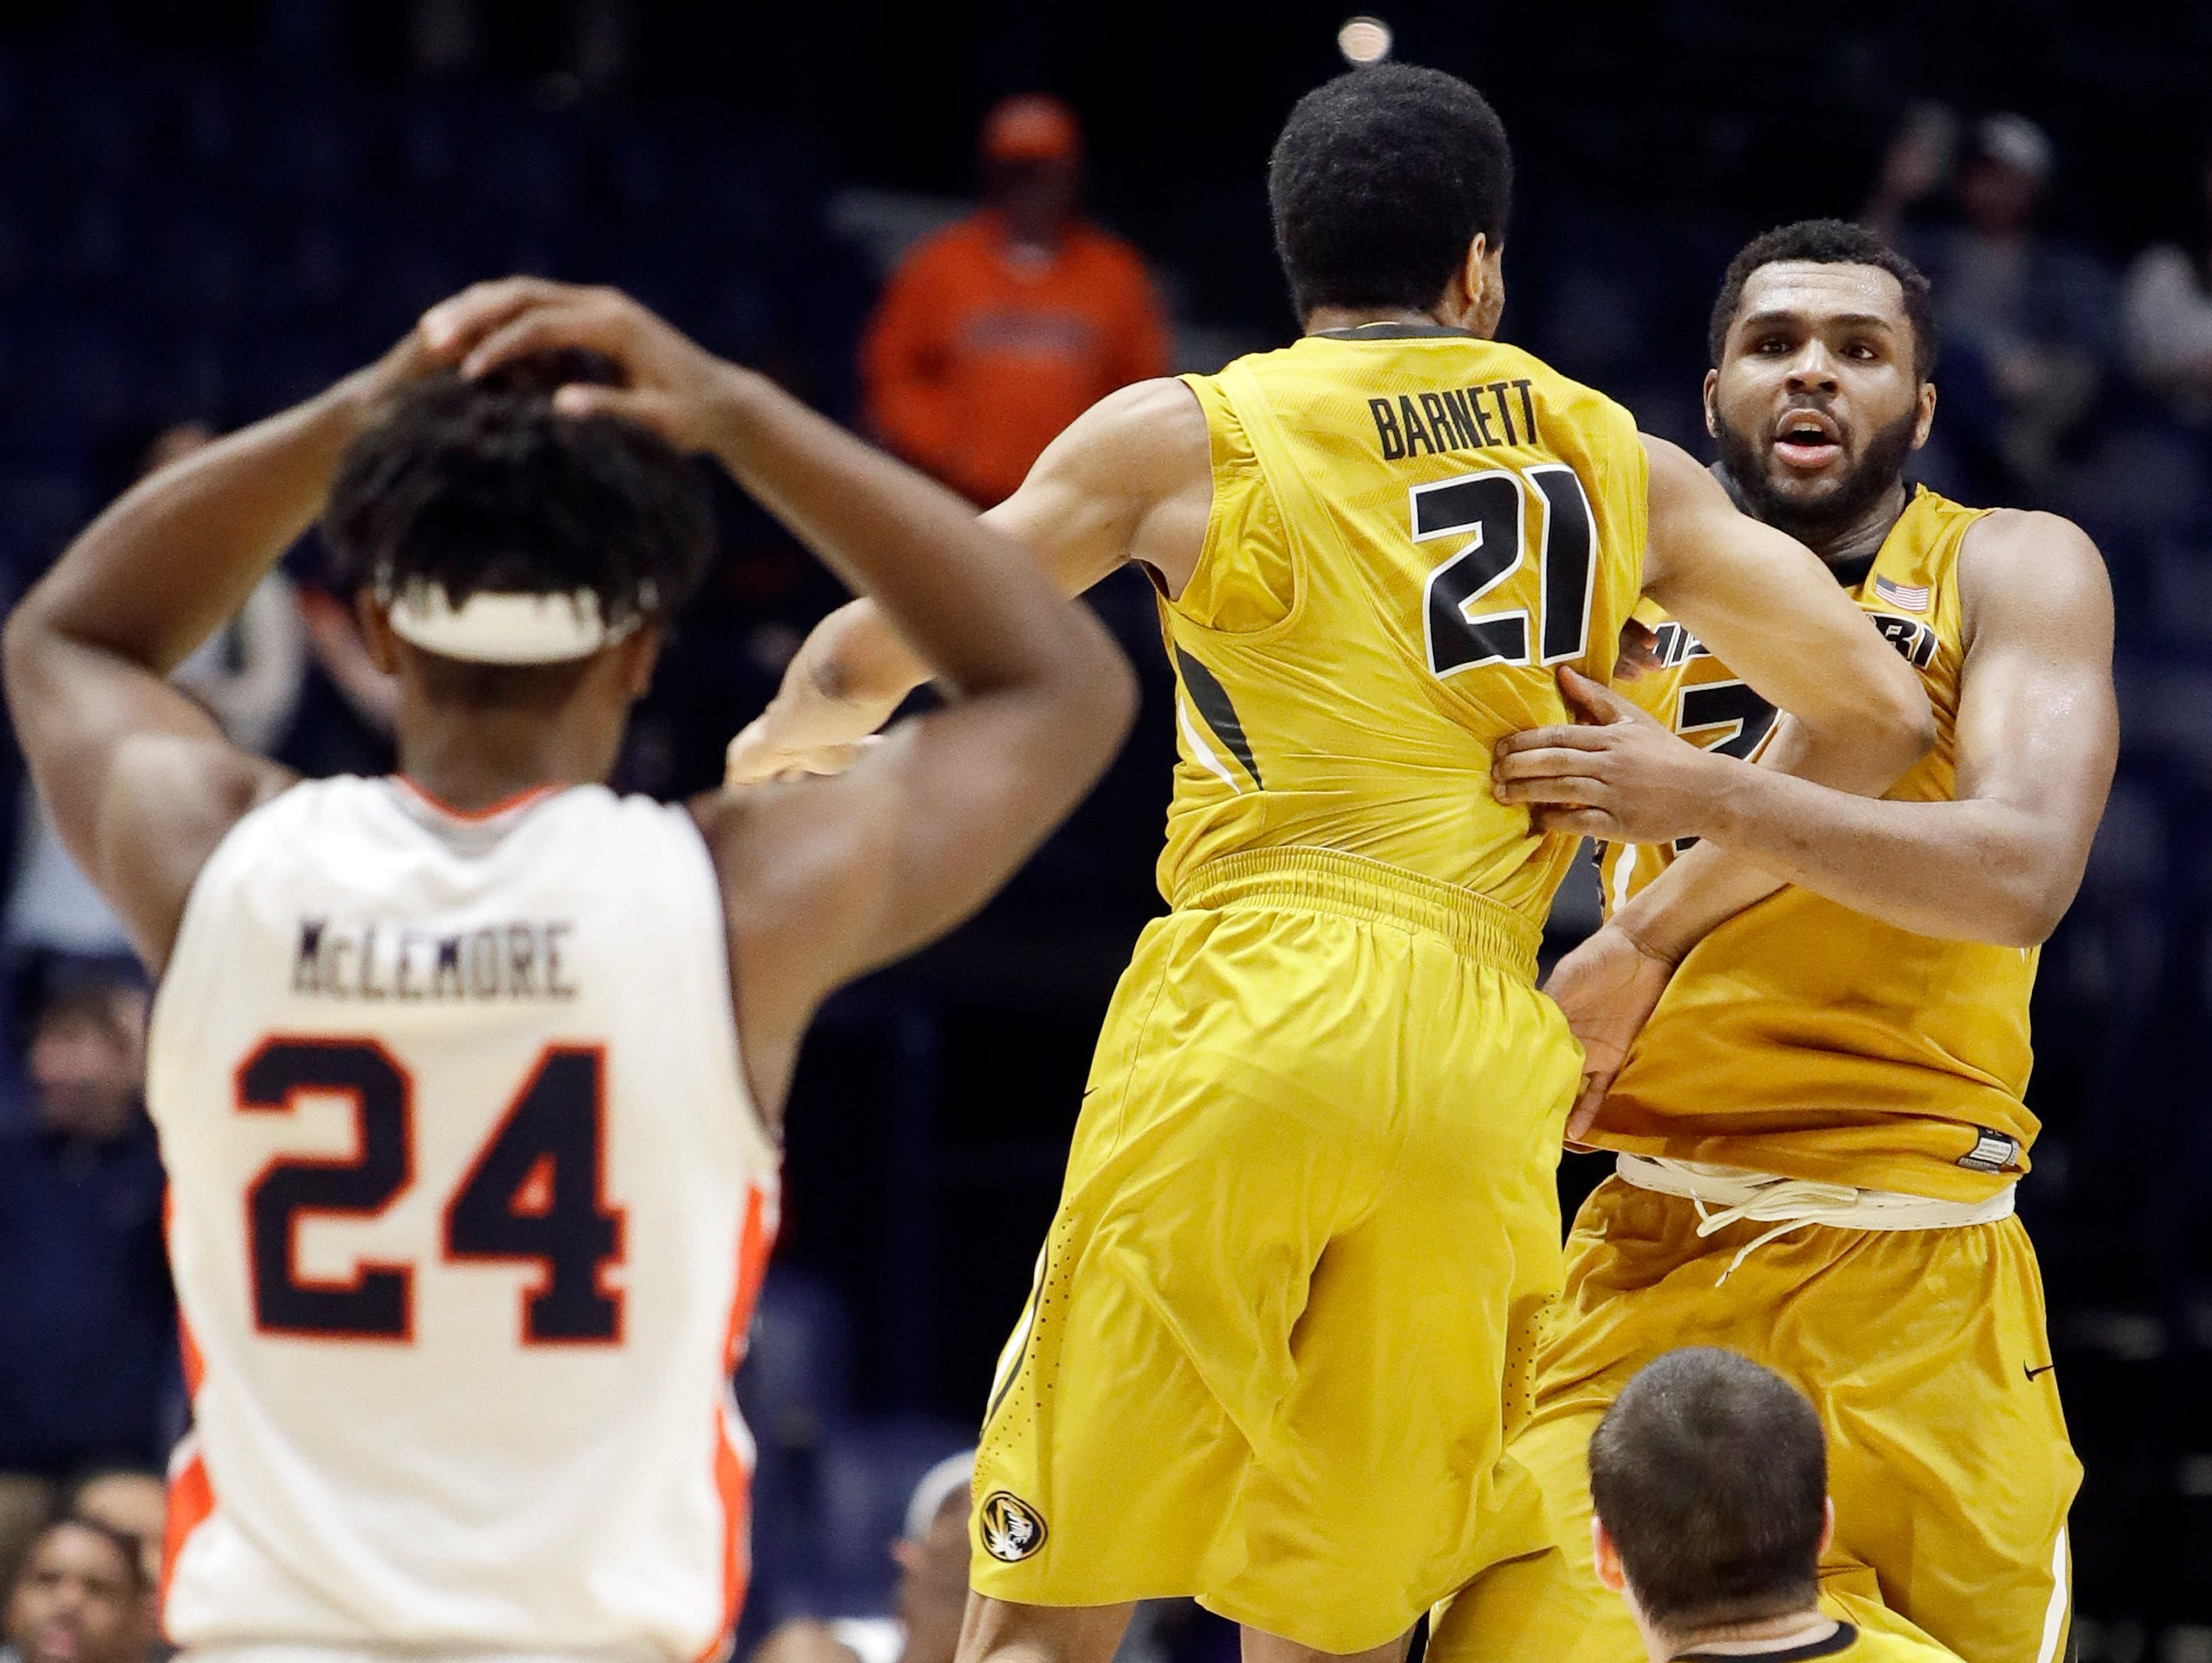 Missouri forward Kevin Puryear, top right, celebrates with Jordan Barnett (21) after Puryear hit a 3-point basket to give Missouri a 86-83 win over Auburn in overtime of an NCAA college basketball game at the Southeastern Conference tournament Wednesday, March 8, 2017, in Nashville, Tenn. At left is Auburn forward Anfernee McLemore.